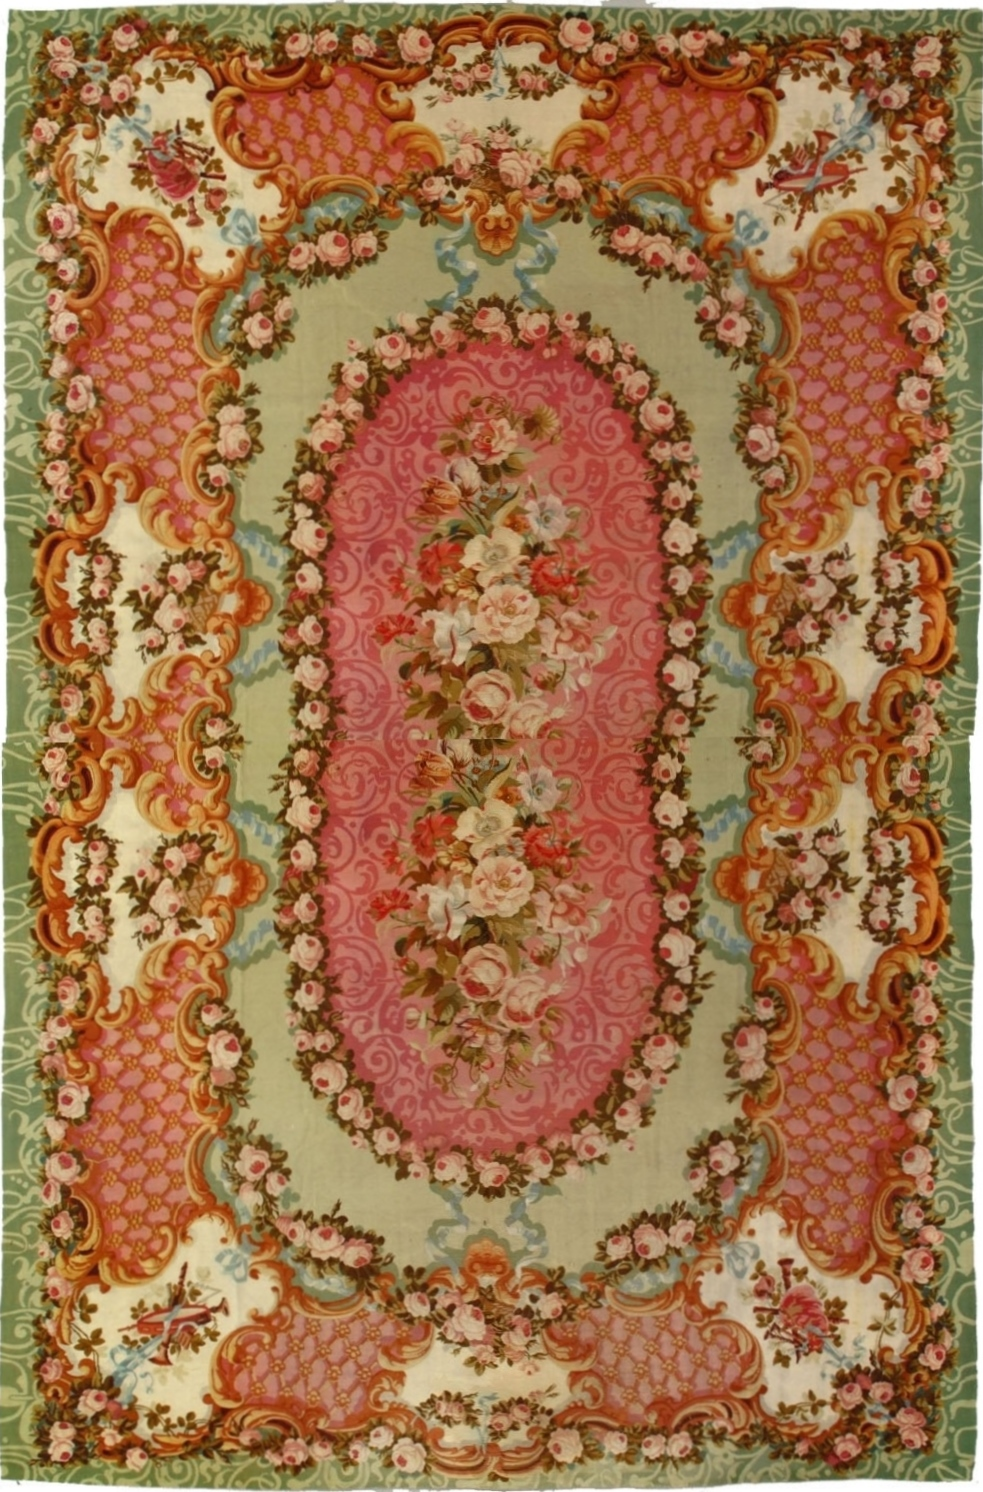 Fabulous 1800 Rugs | Sensational Aubusson Rugs